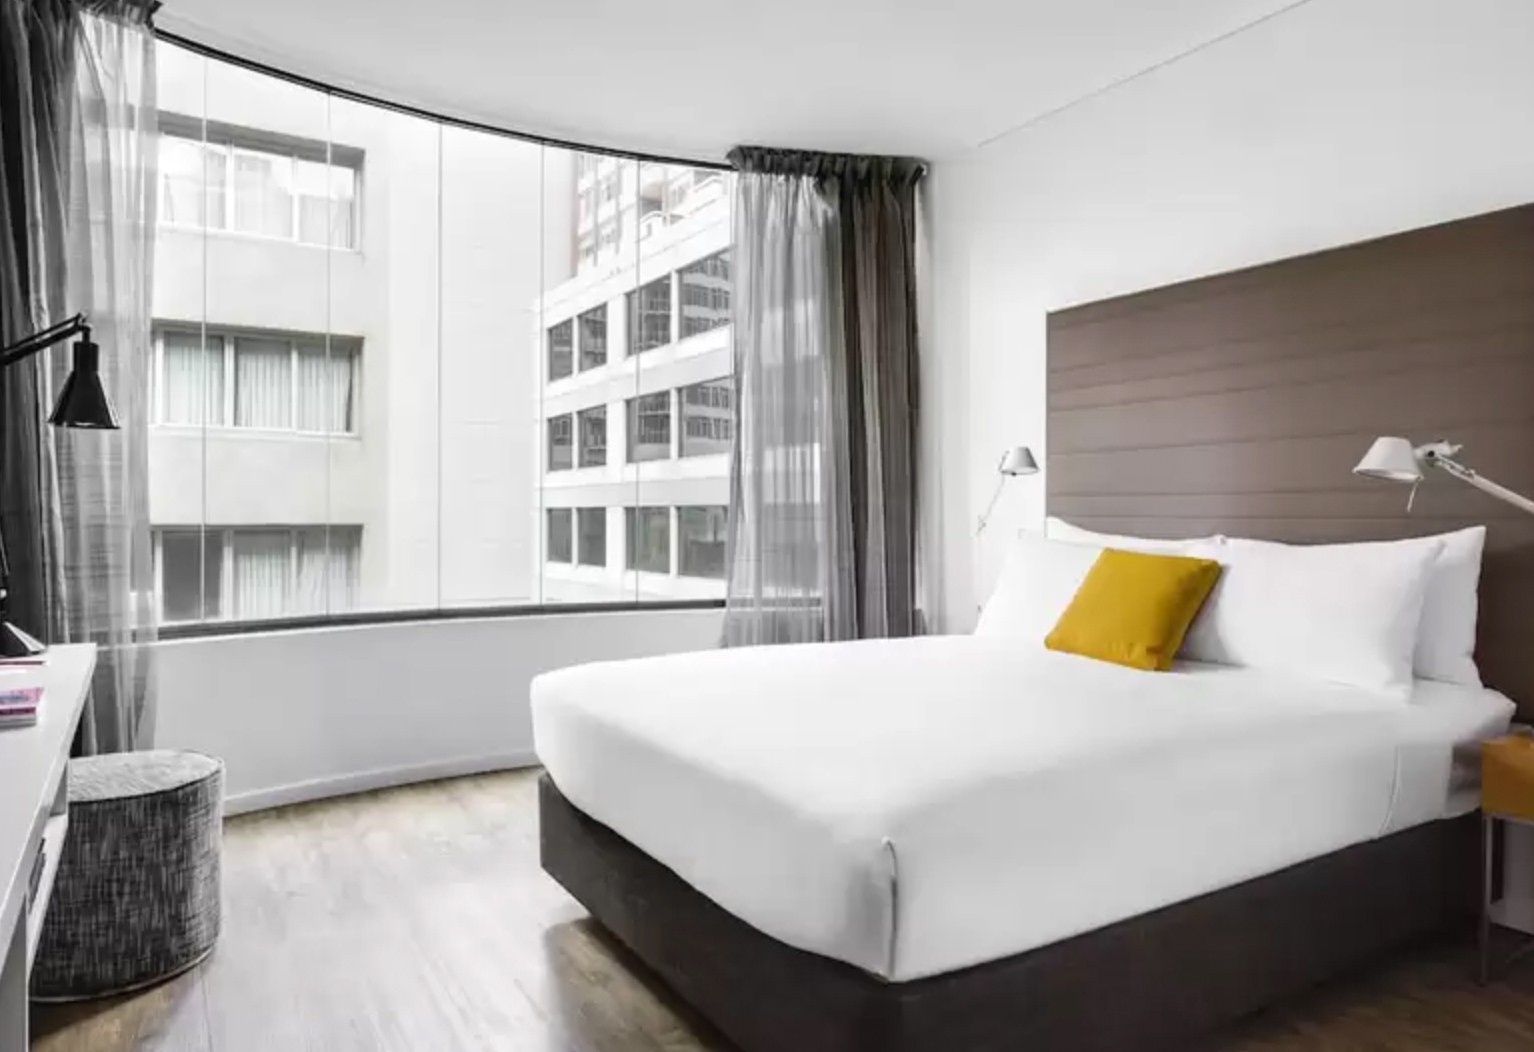 Ovolo Laneways offers a host of free amenities